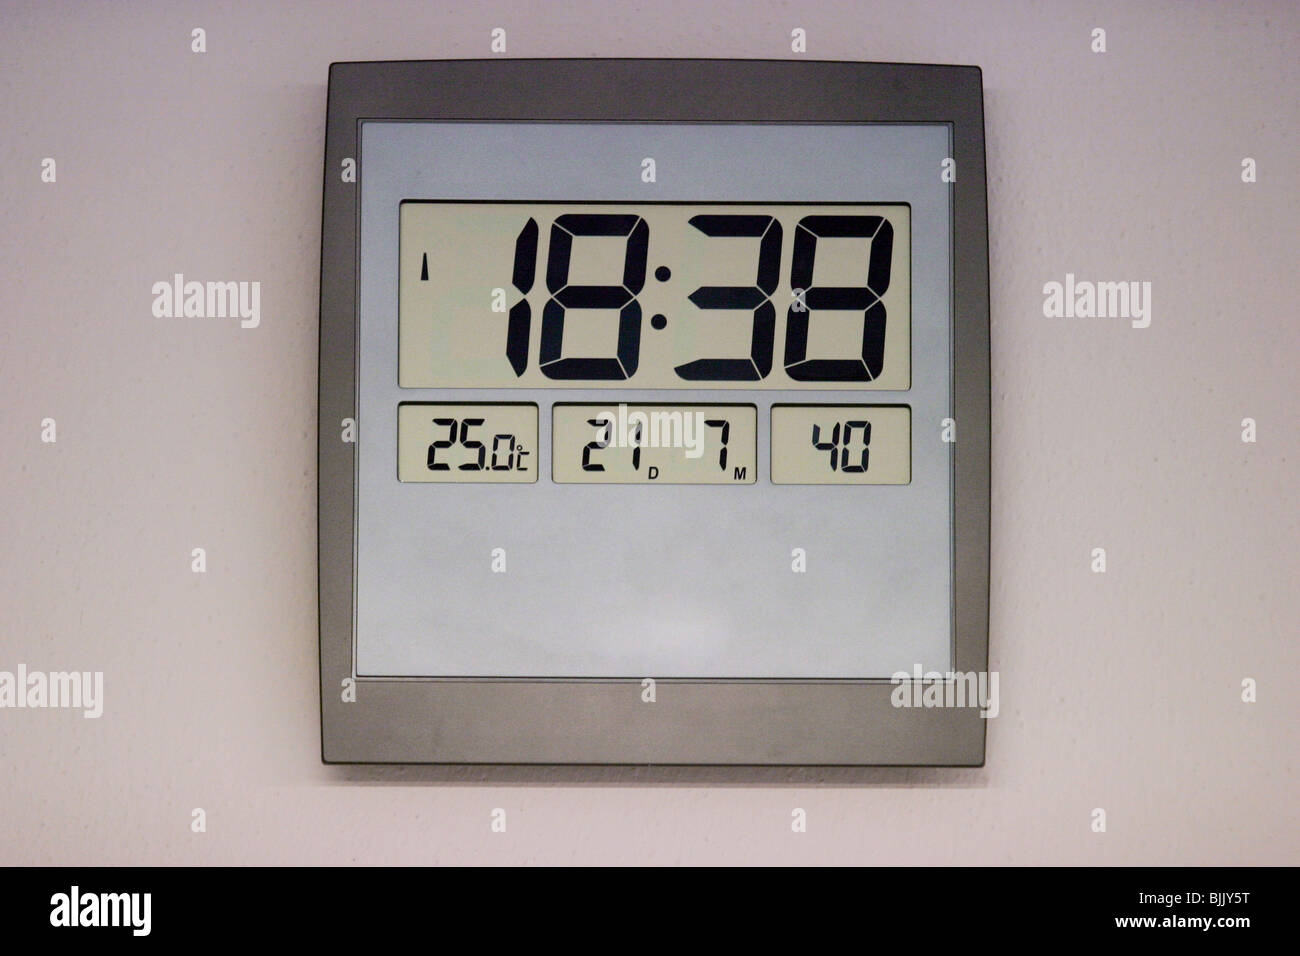 Digital clock with time, date and temperature read out - Stock Image